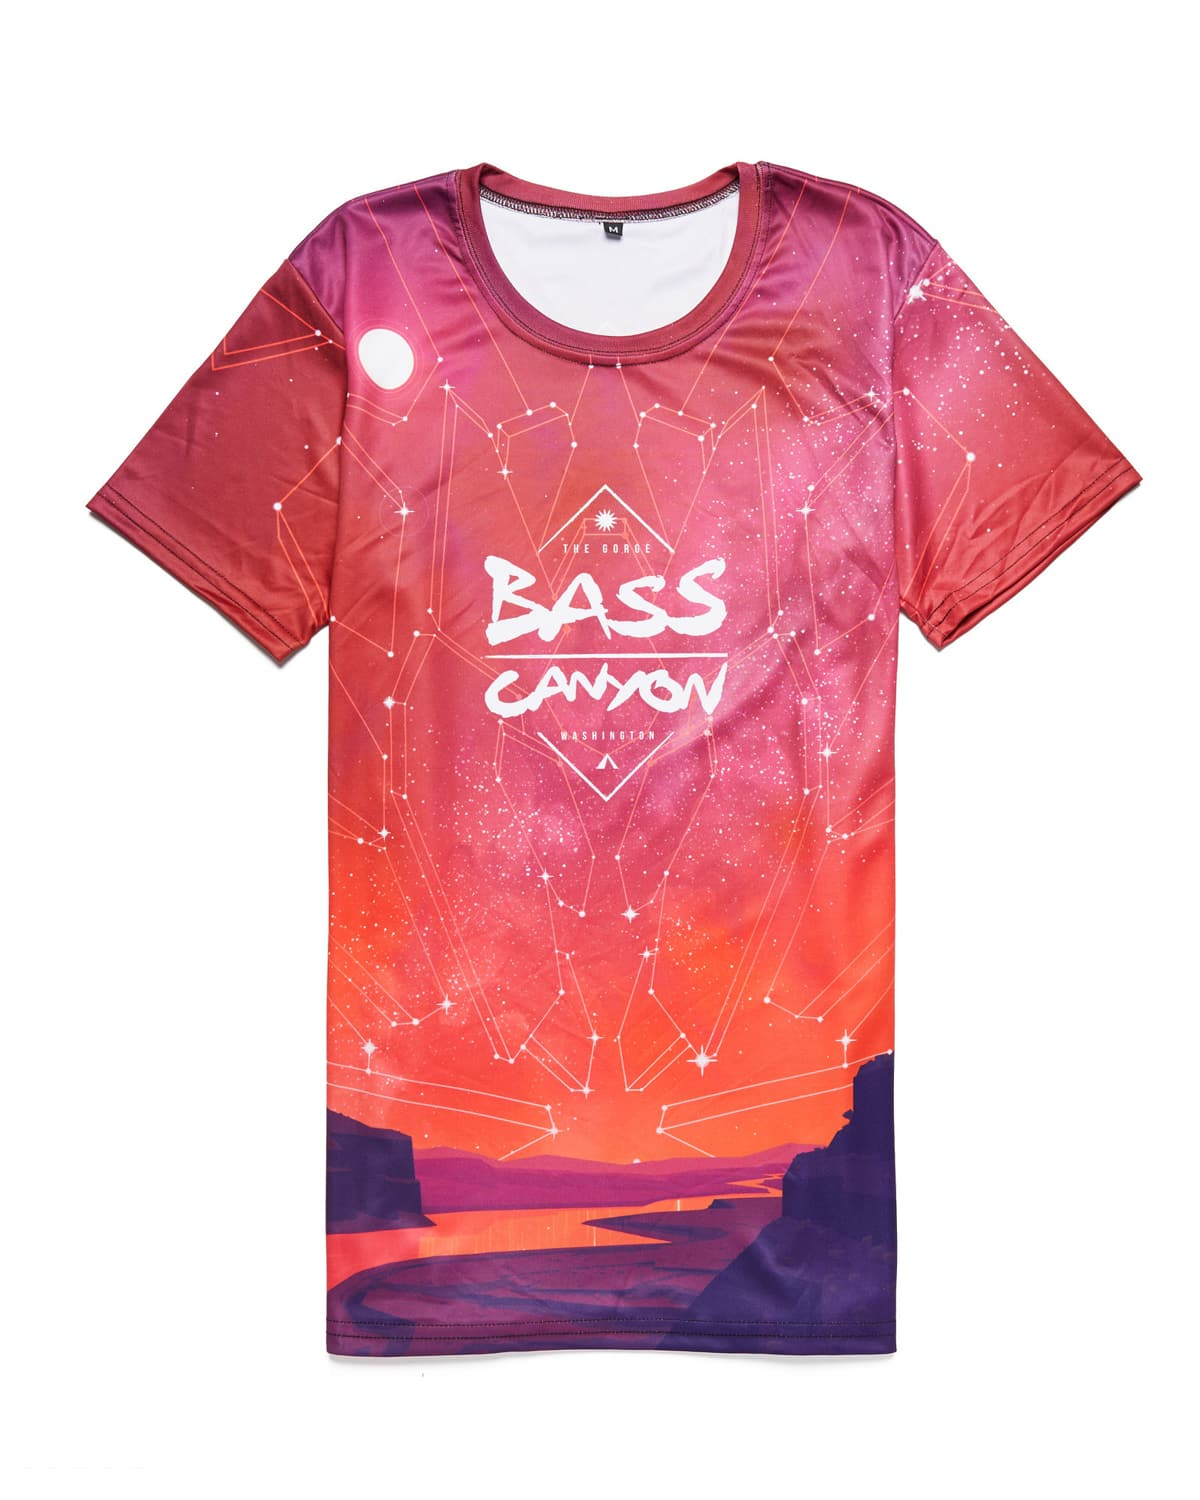 Bass Canyon 2018 Lineup DyeSub Tee - Red